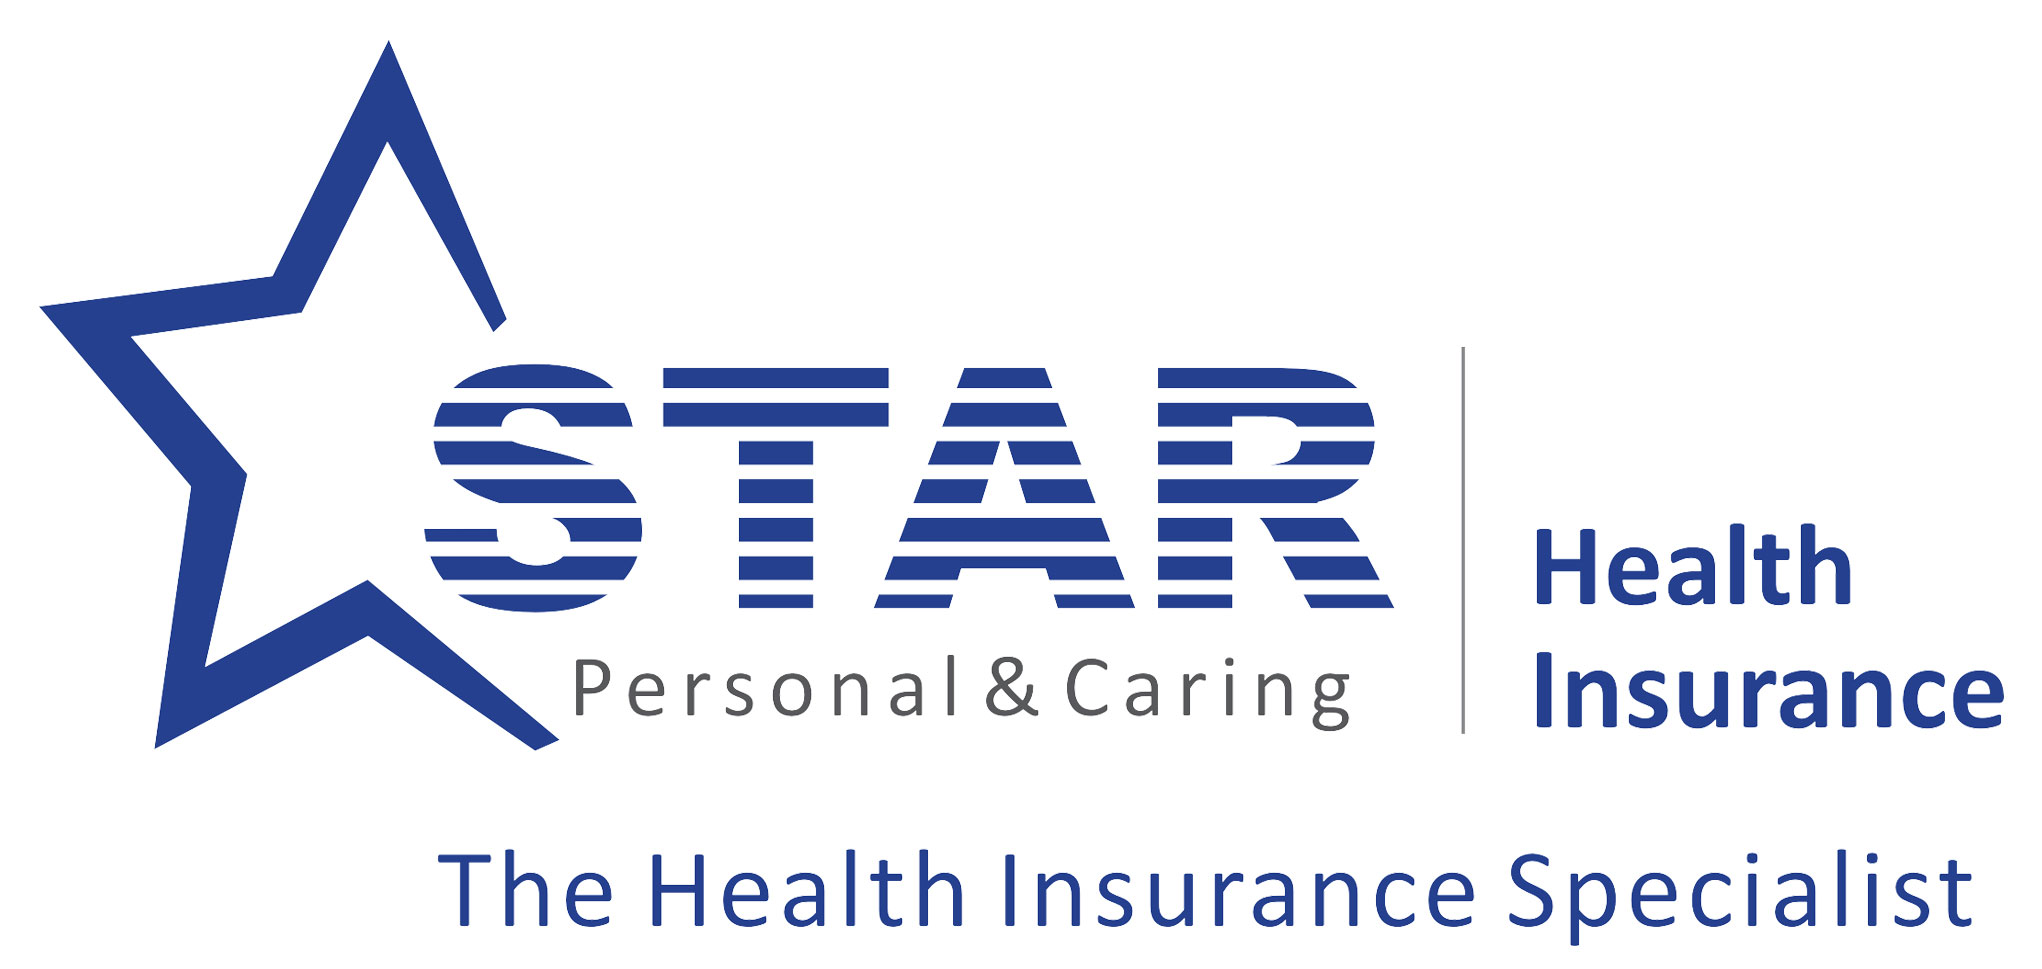 Star Senior Citizens Red Carpet Health Insurance Policy (Parents) Image